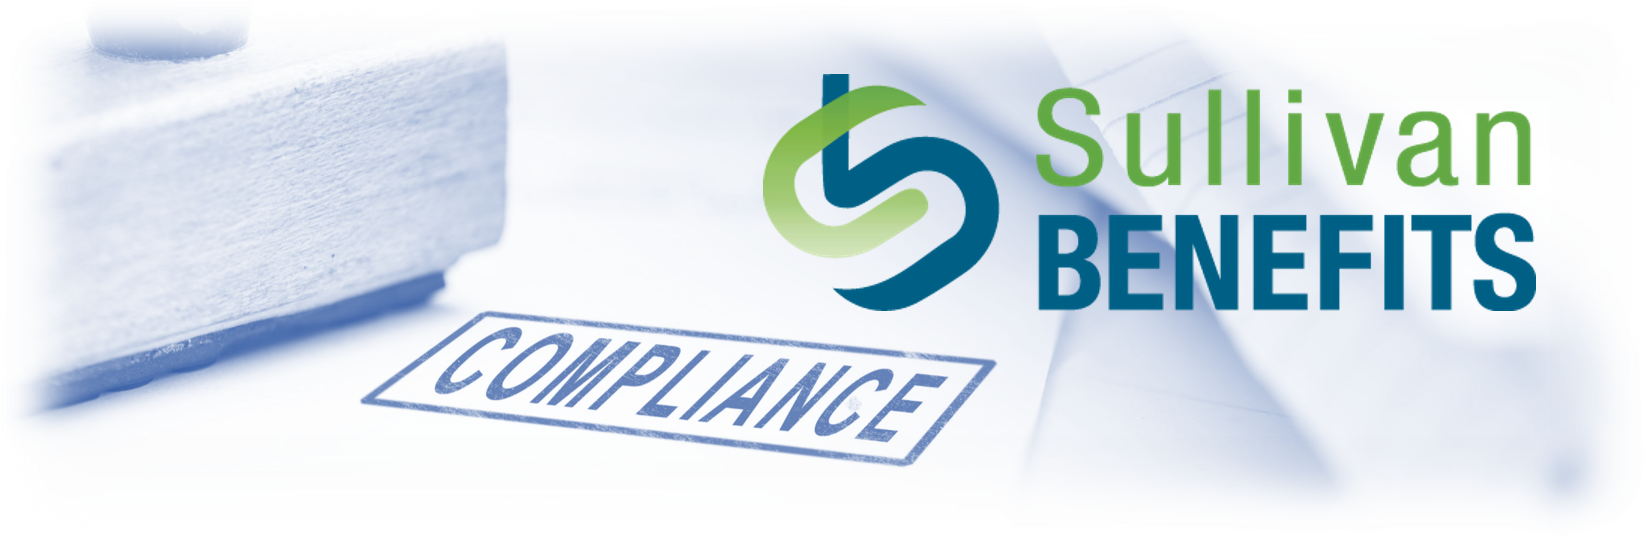 Compliance Alert: Clarifying the COVID-19 FSA Guidance